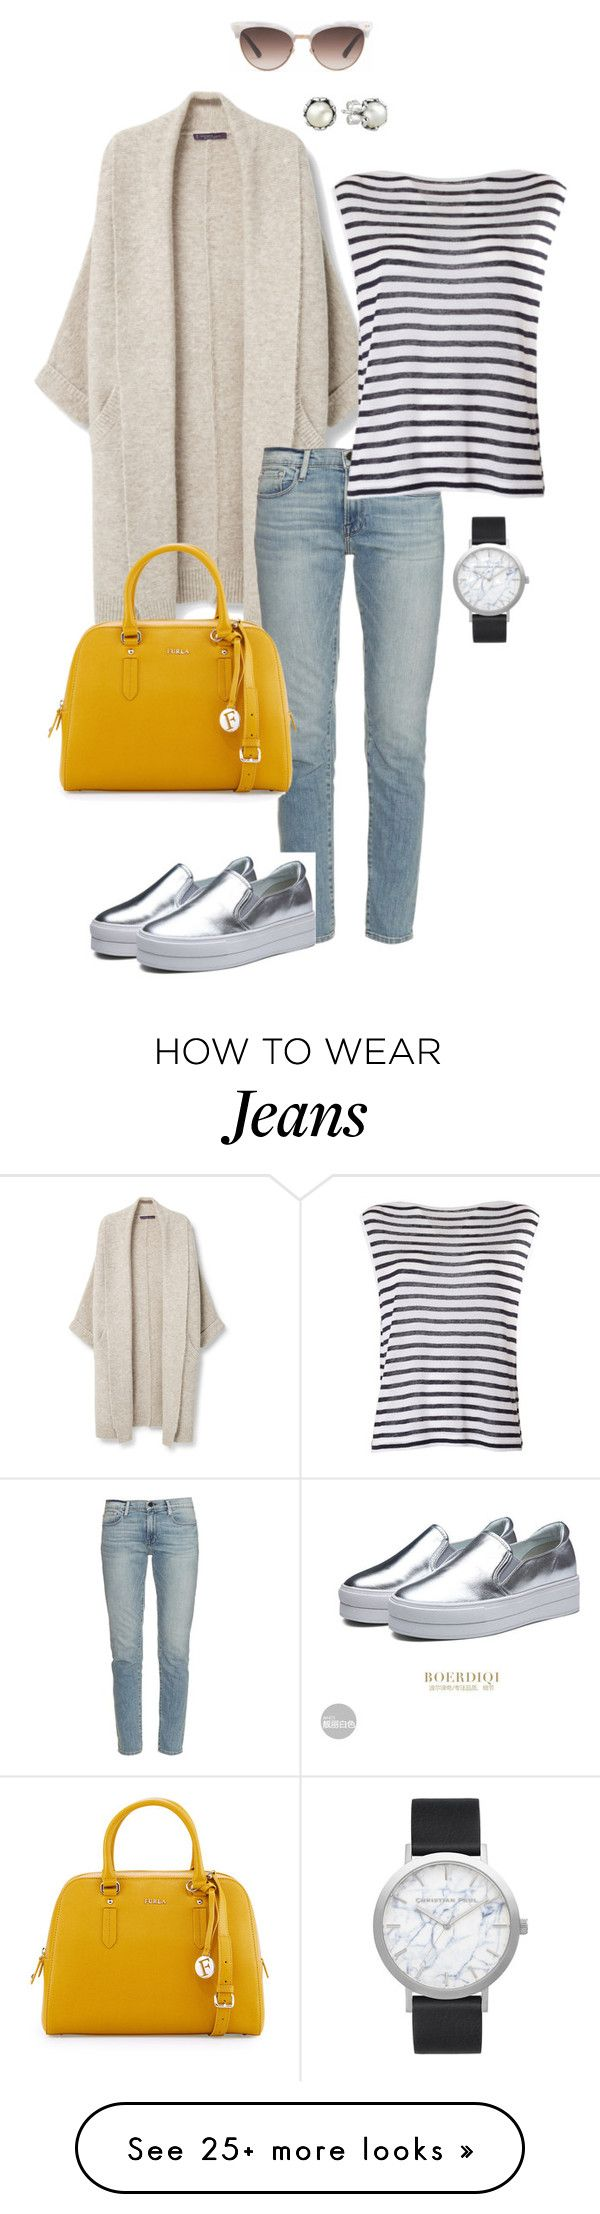 """""""beige cardigan"""" by ulusia-1 on Polyvore featuring Violeta by Mango, Frame Denim, Furla, Gucci, Elwood, Pandora and T By Alexander Wang"""